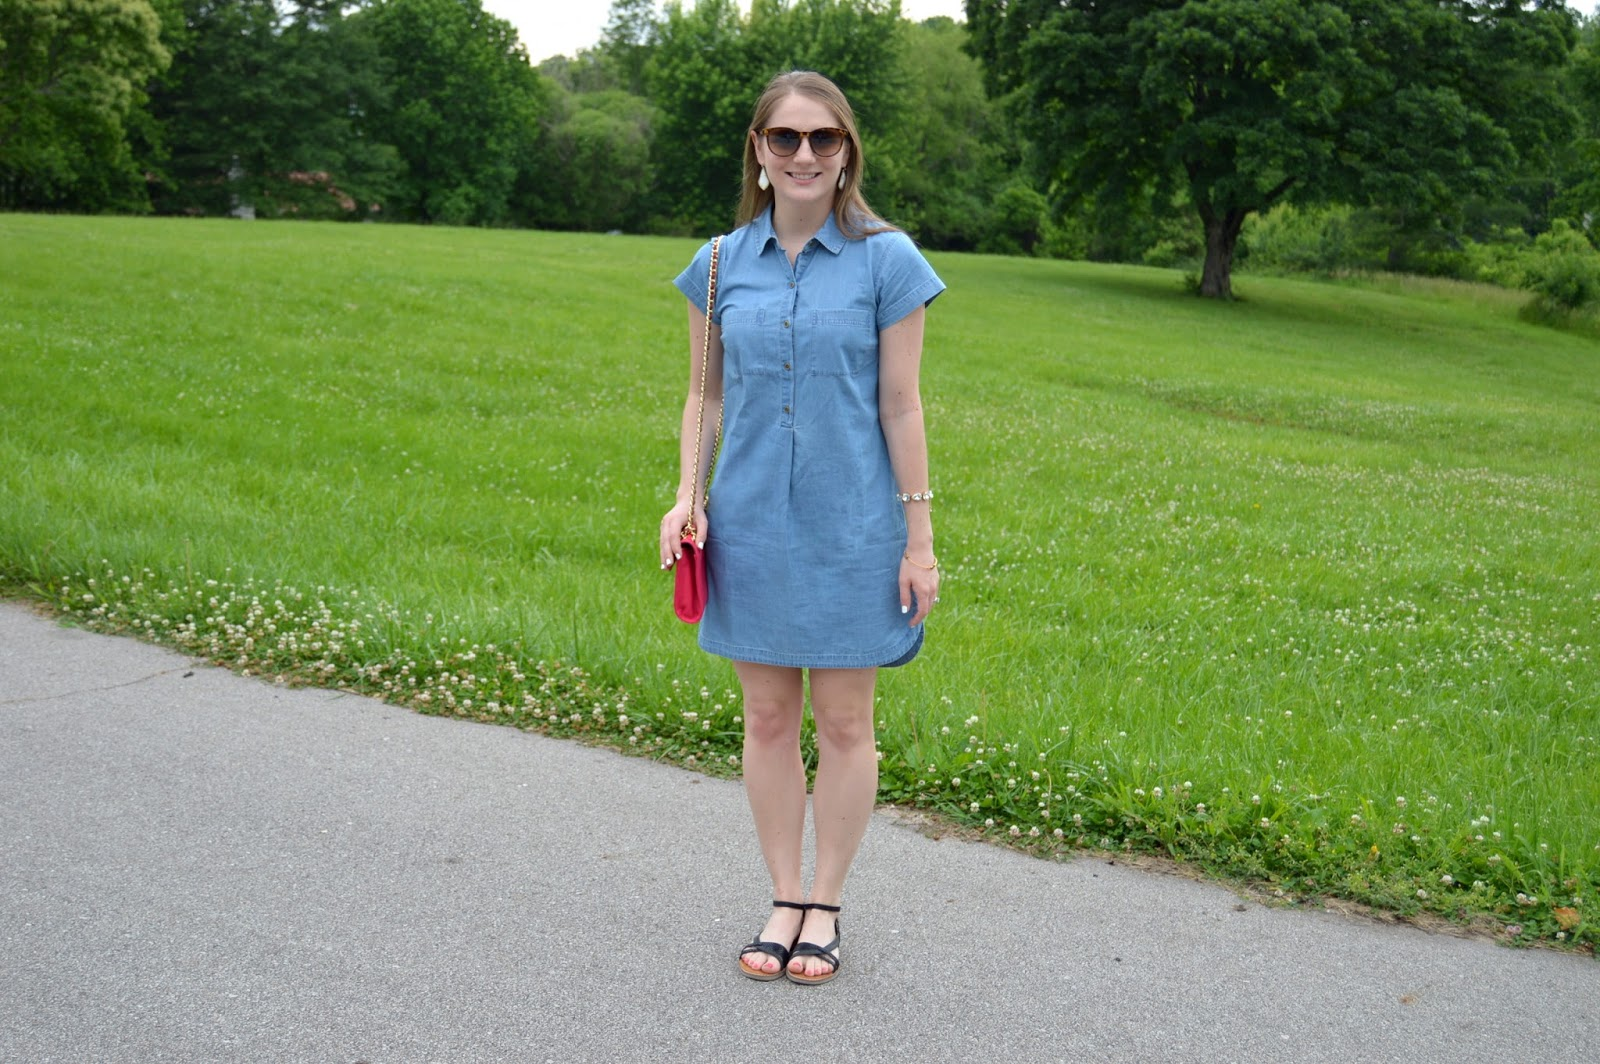 light wash chambray dress | how to style a chambray dress for summer | what to wear with a chambray dress | light wash chambray dress | what looks good with chambray | chambray styling ideas | summer lookbook | summer outfits | a memory of us